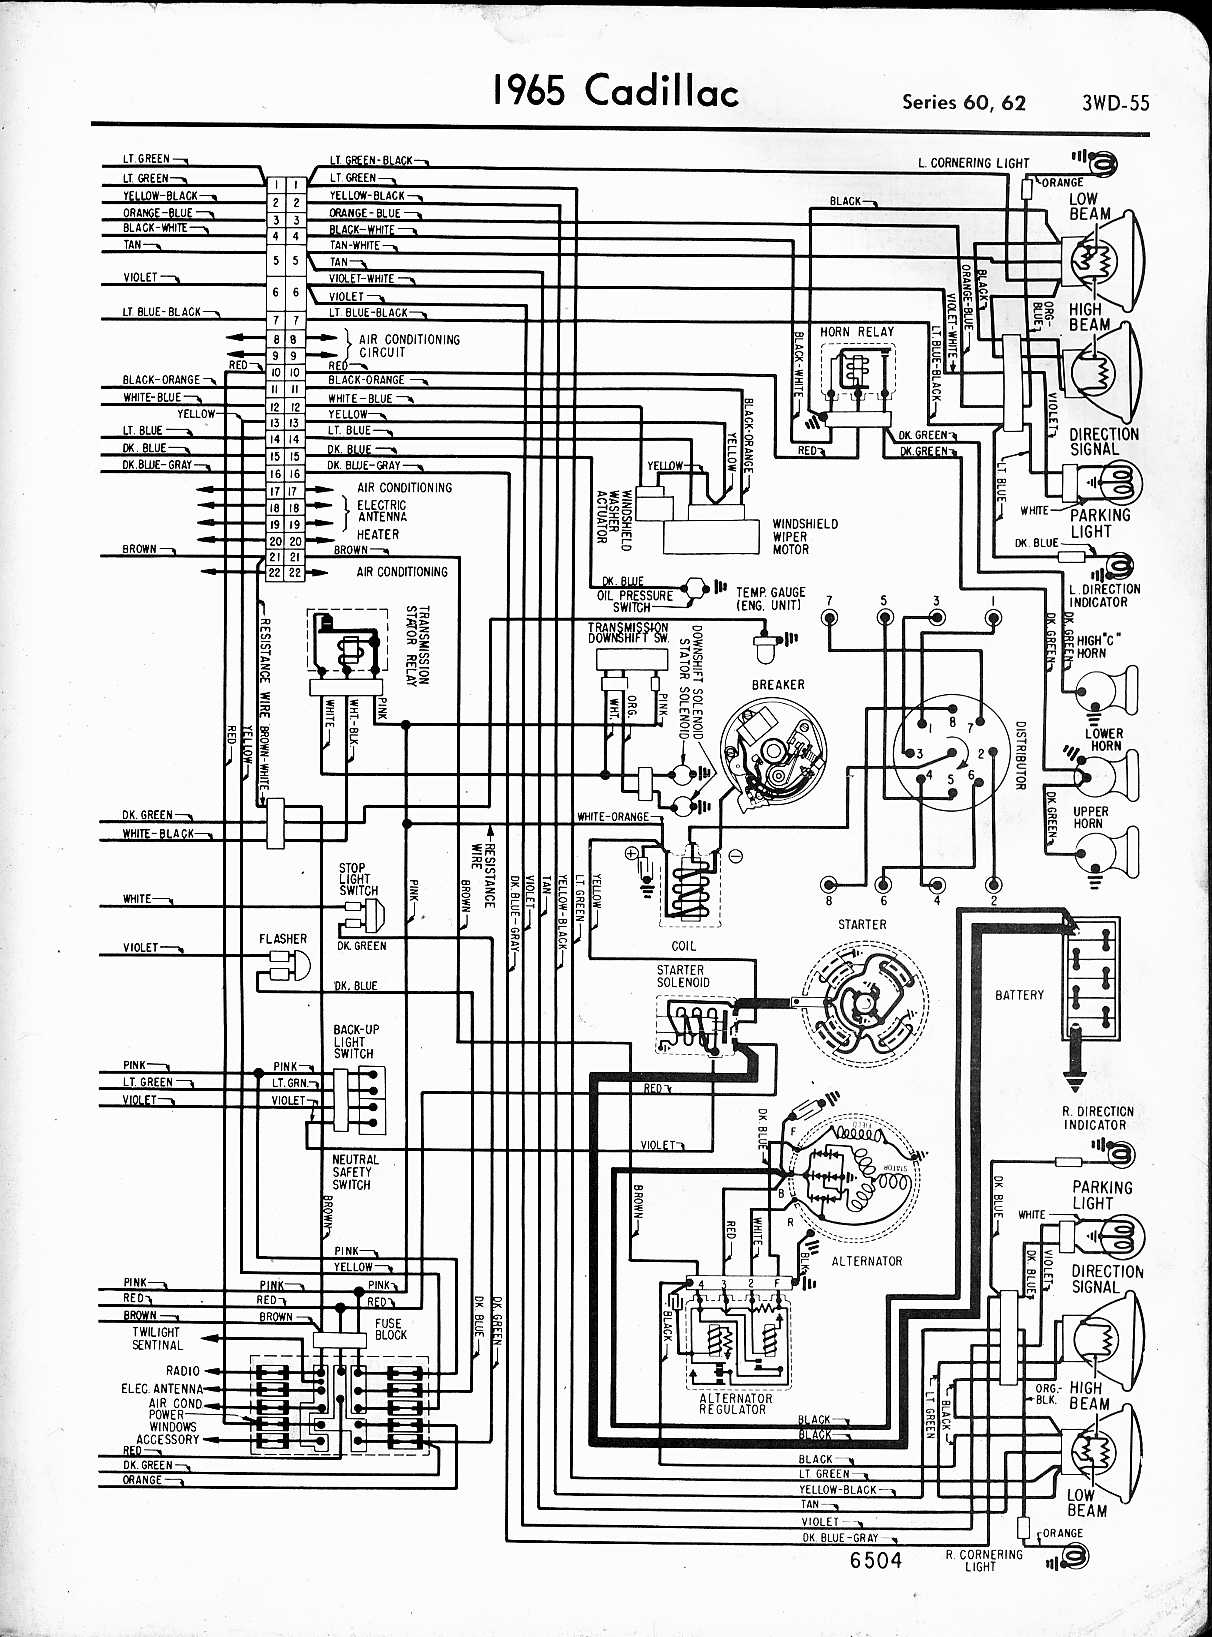 Cadillac Northstar Alternator Wiring Start Building A Diagram 1965 Rolls Royce Diagrams Schematic 1957 Rh Oldcarmanualproject Com 1997 Deville 2000